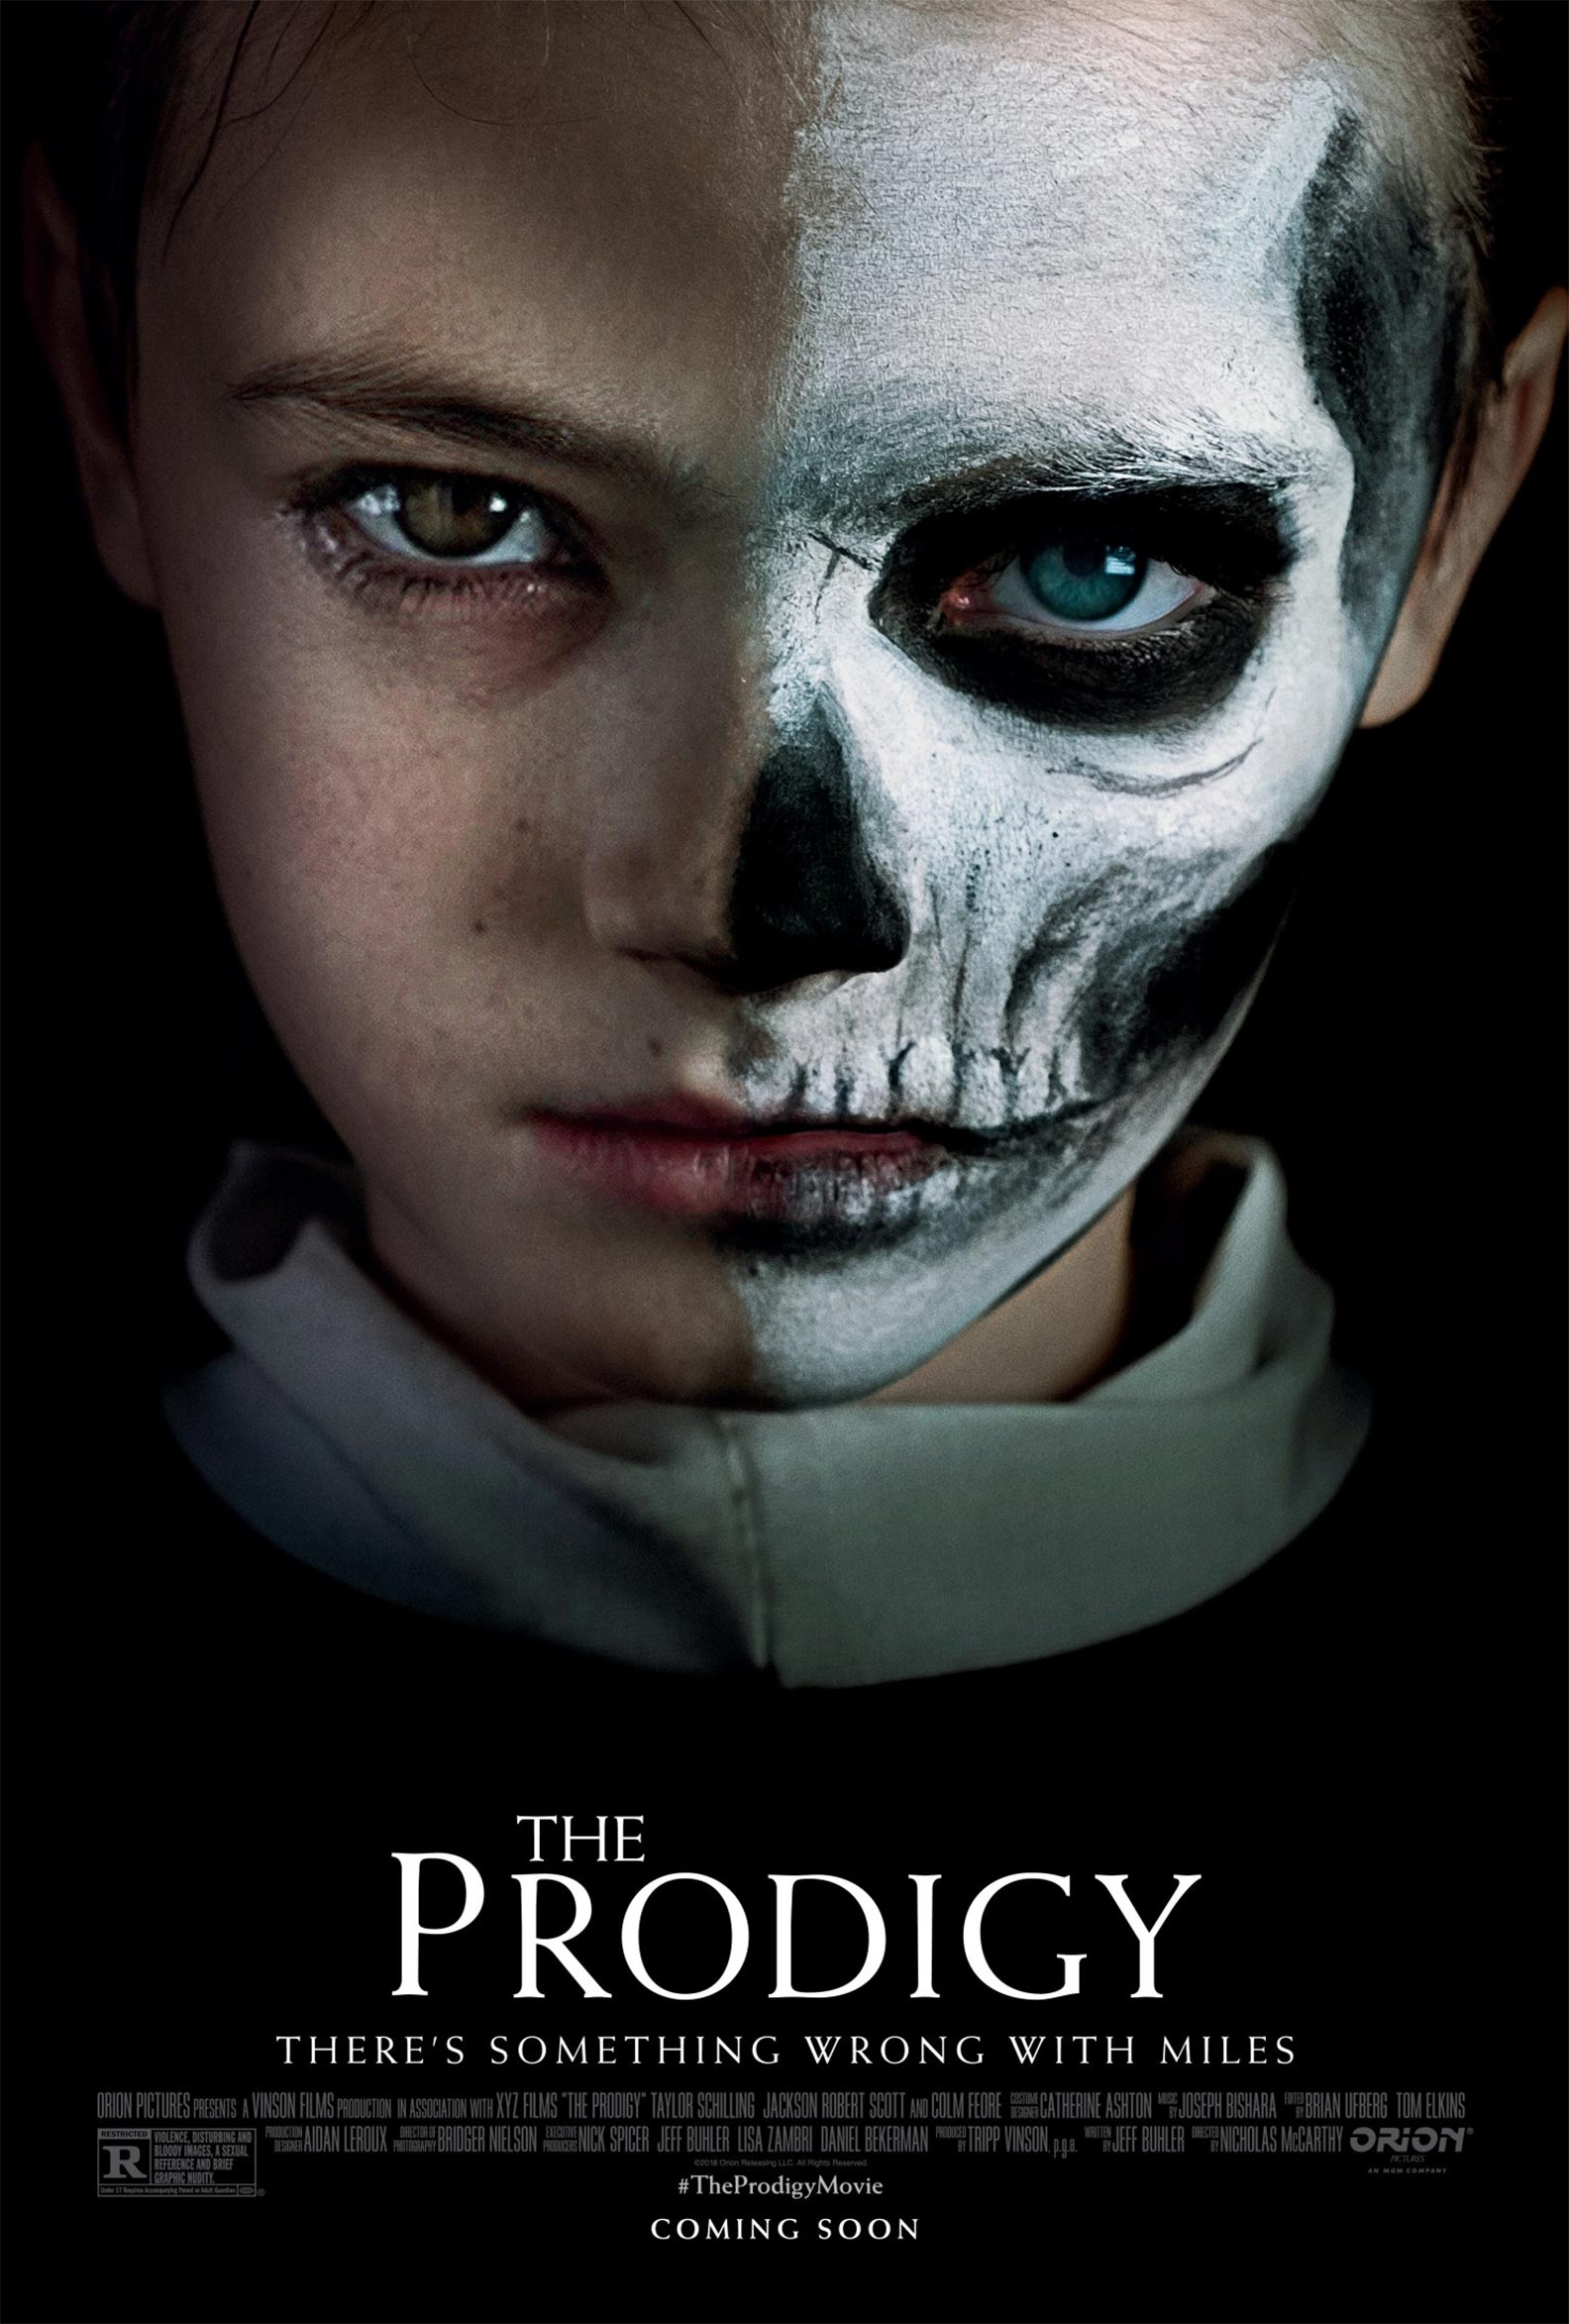 Image result for The Prodigy poster 2019